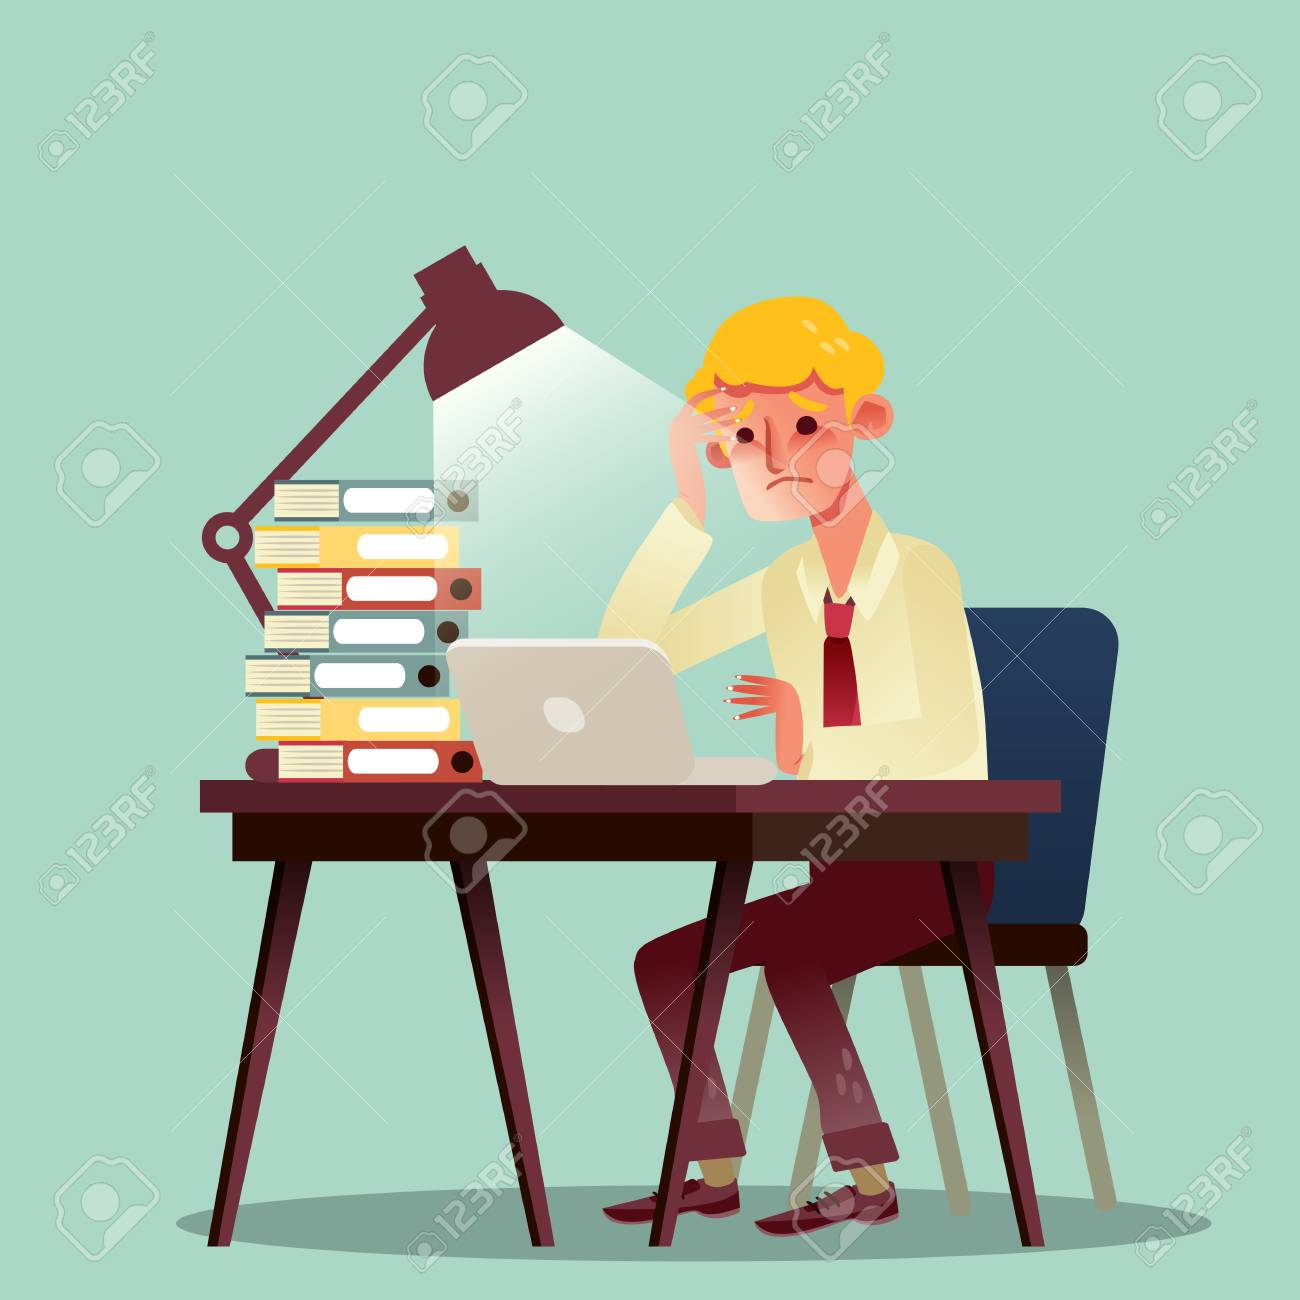 Hard Working Business Man With Pile Of Work On Desk Vector Cartoon